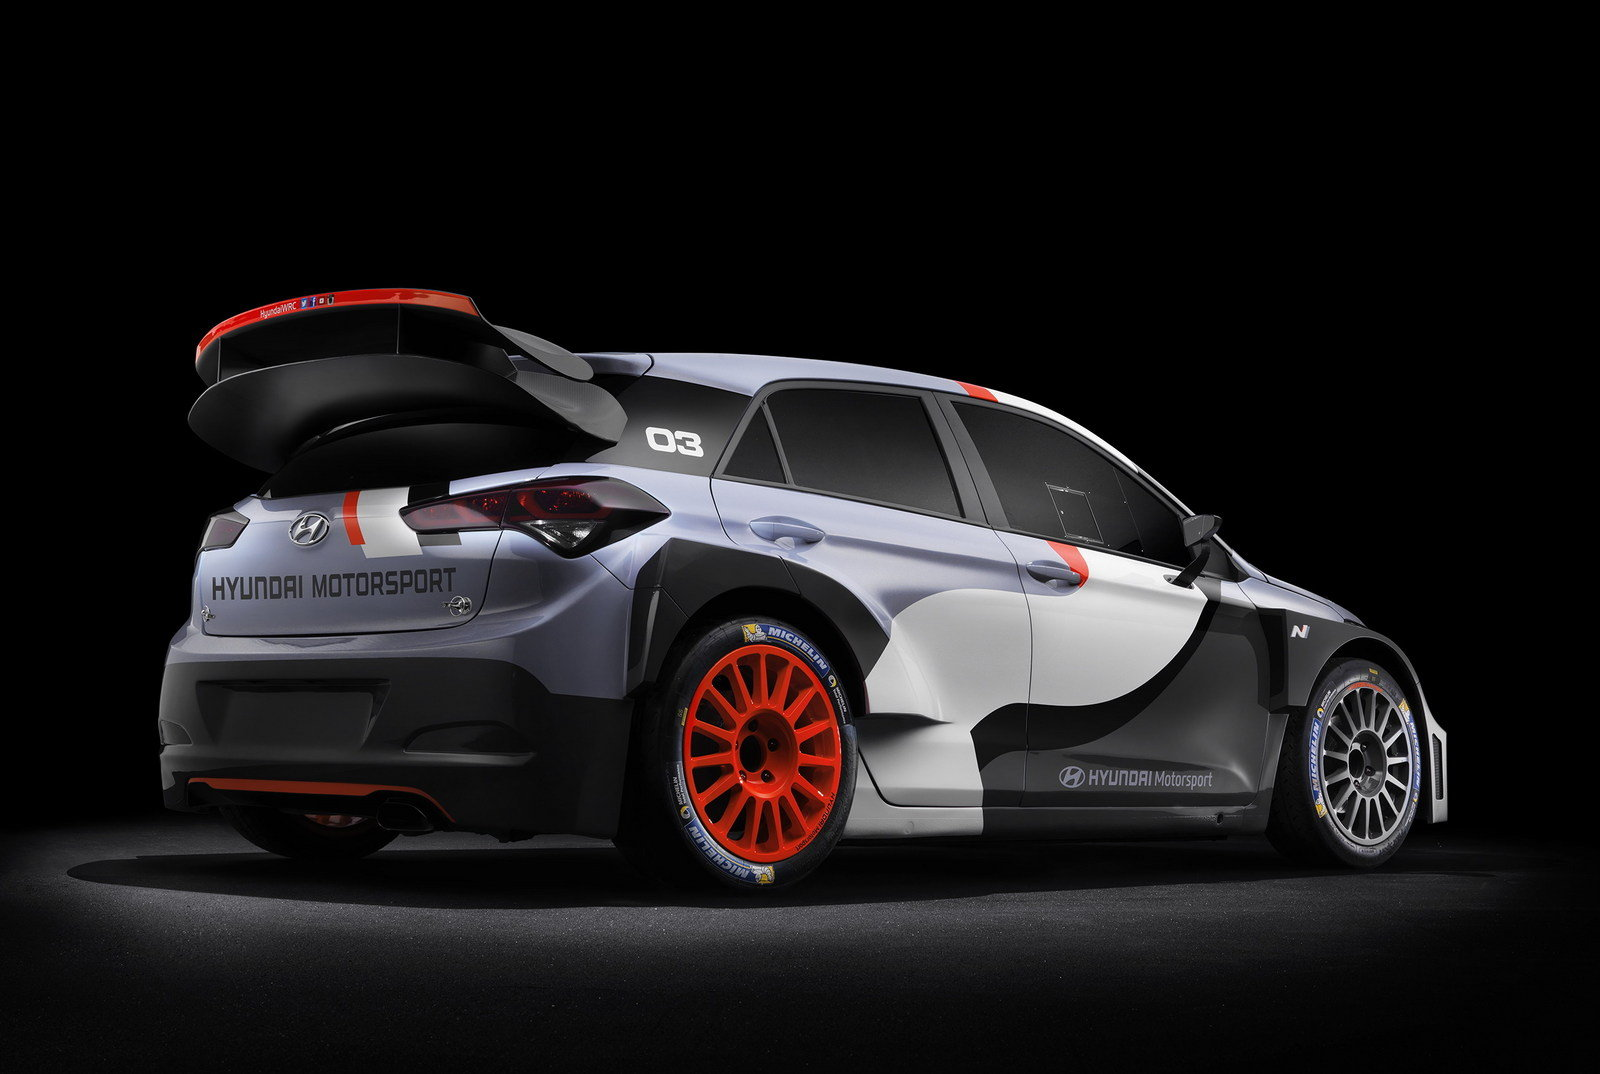 2016 hyundai i20 wrc picture 646170 car review top speed. Black Bedroom Furniture Sets. Home Design Ideas